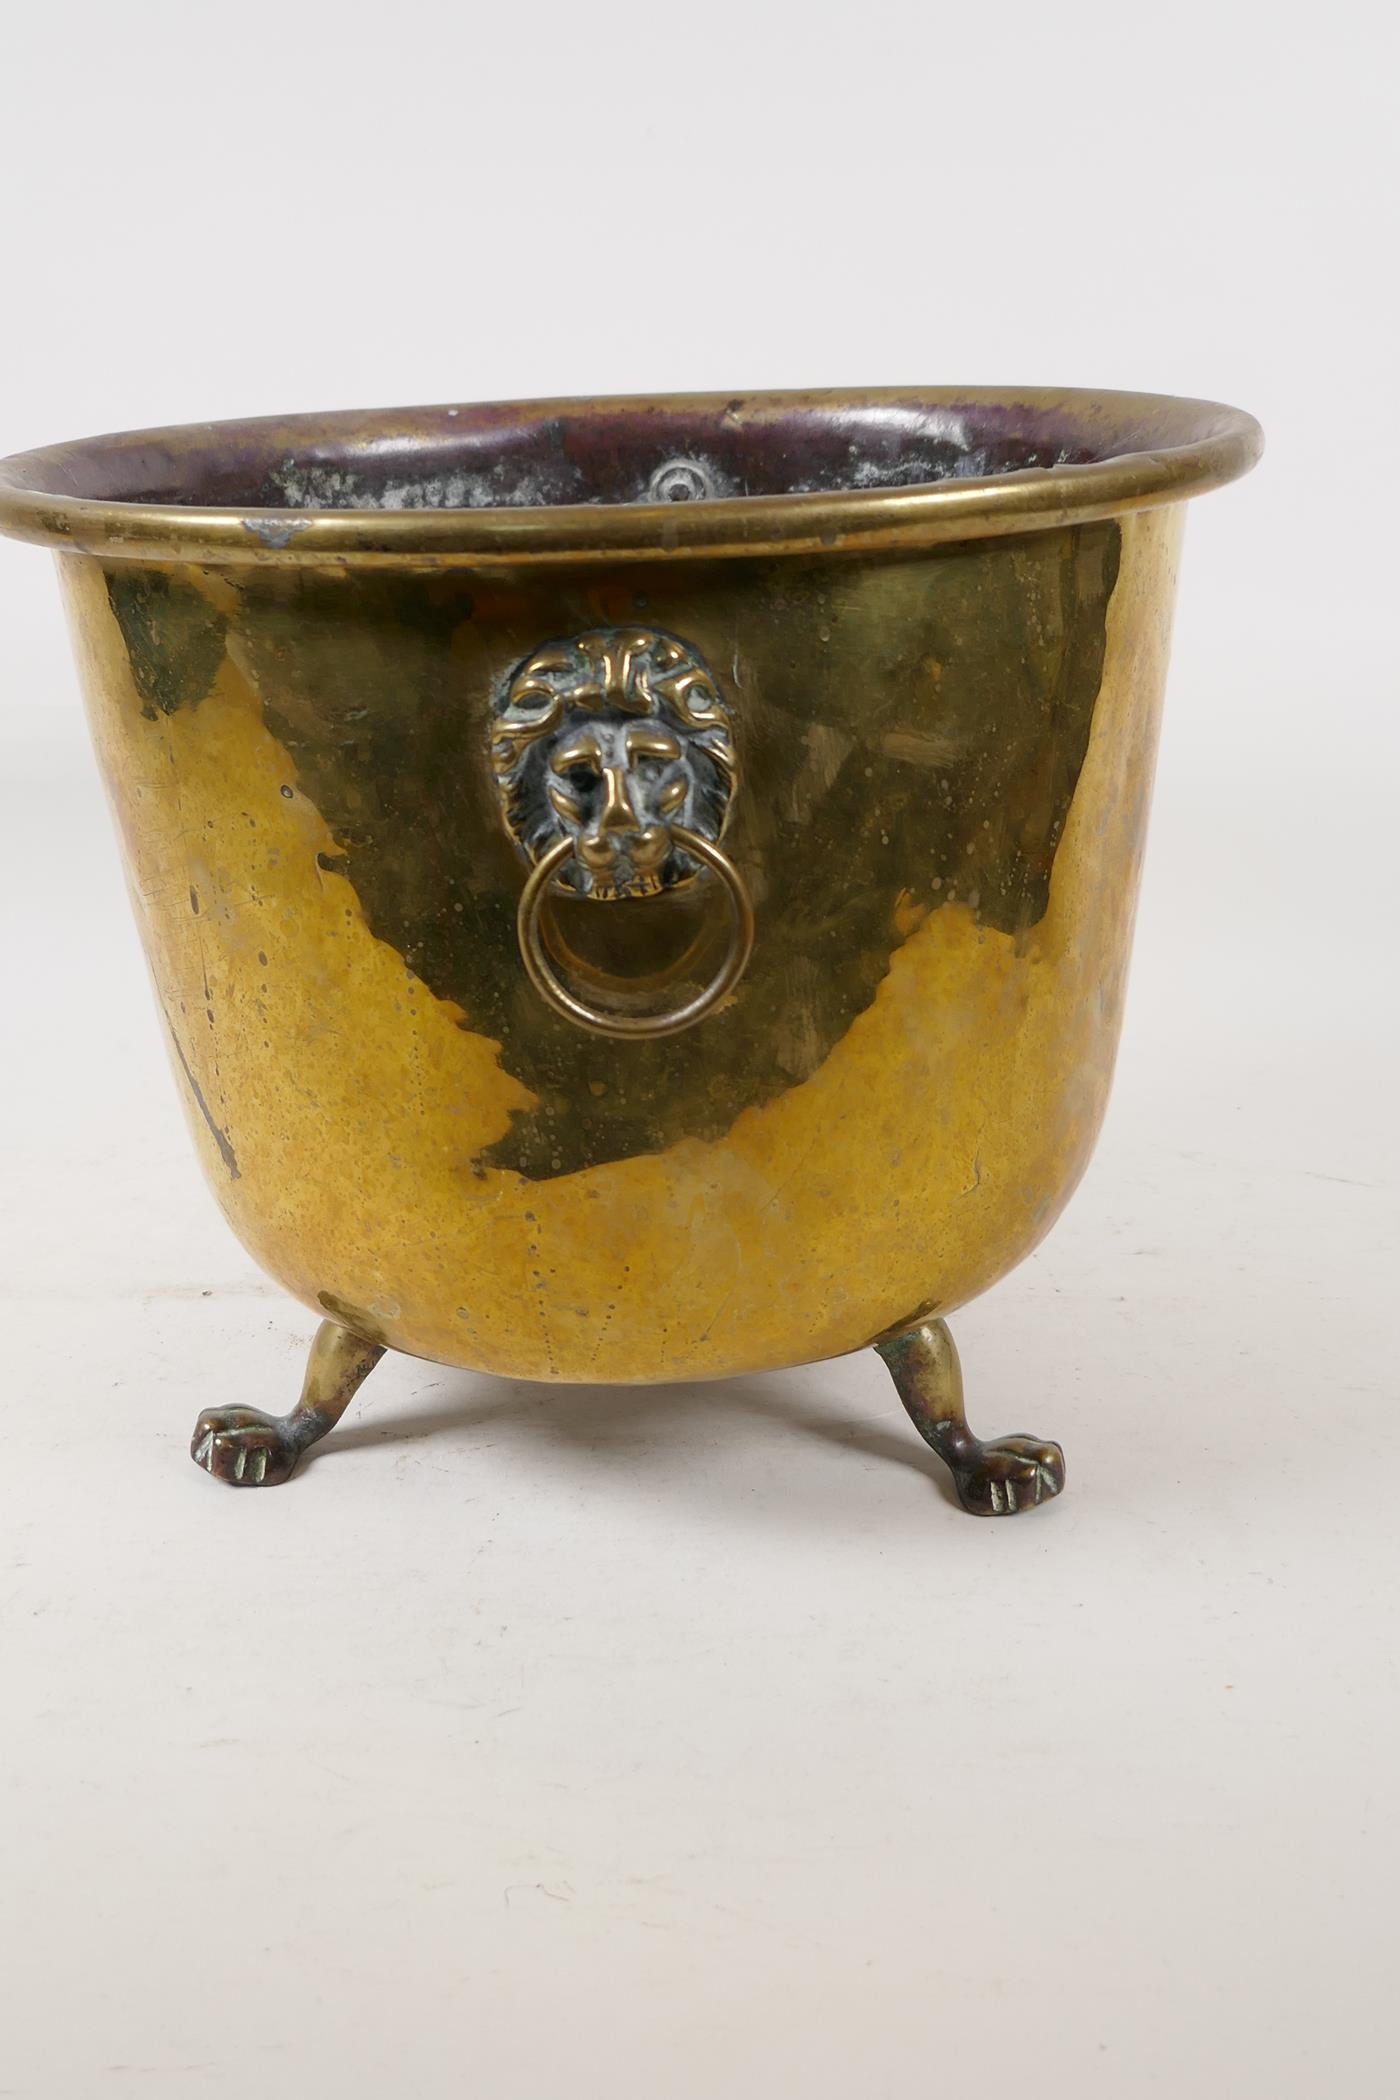 """A C19th polished brass jardiniere with lion mask handles and three paw feet, 9"""" high - Image 2 of 4"""